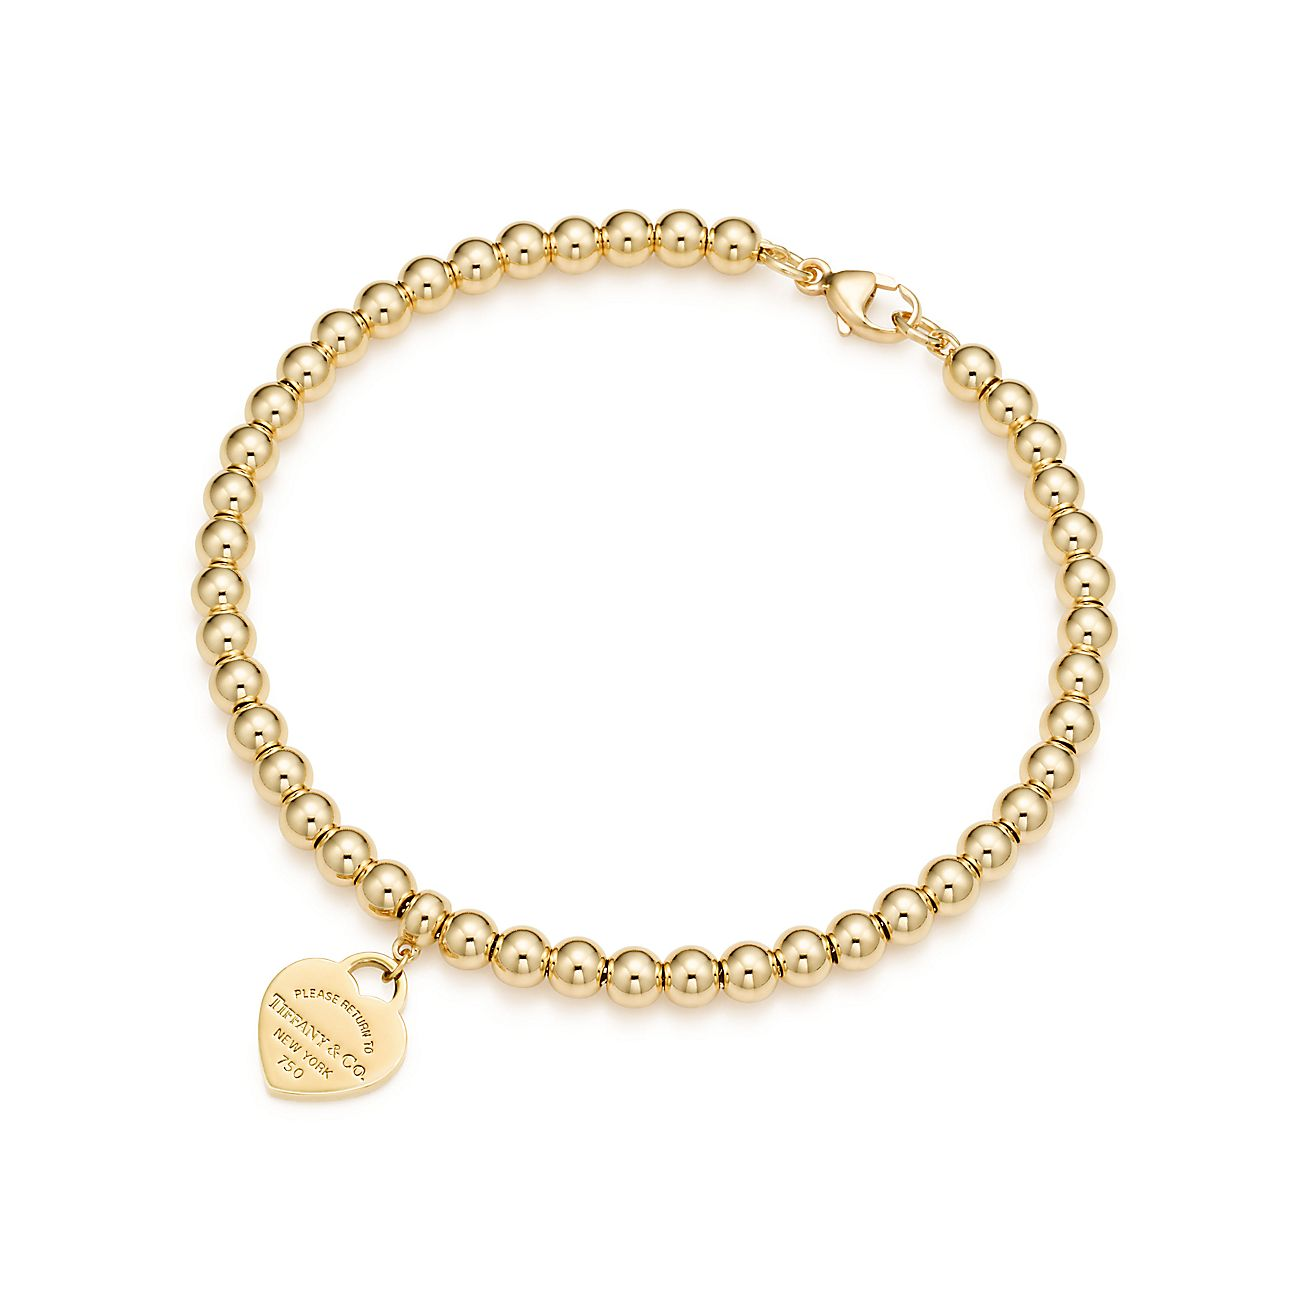 Return To Tiffany Mini Heart Tag In 18k Gold On A Bead Bracelet Co